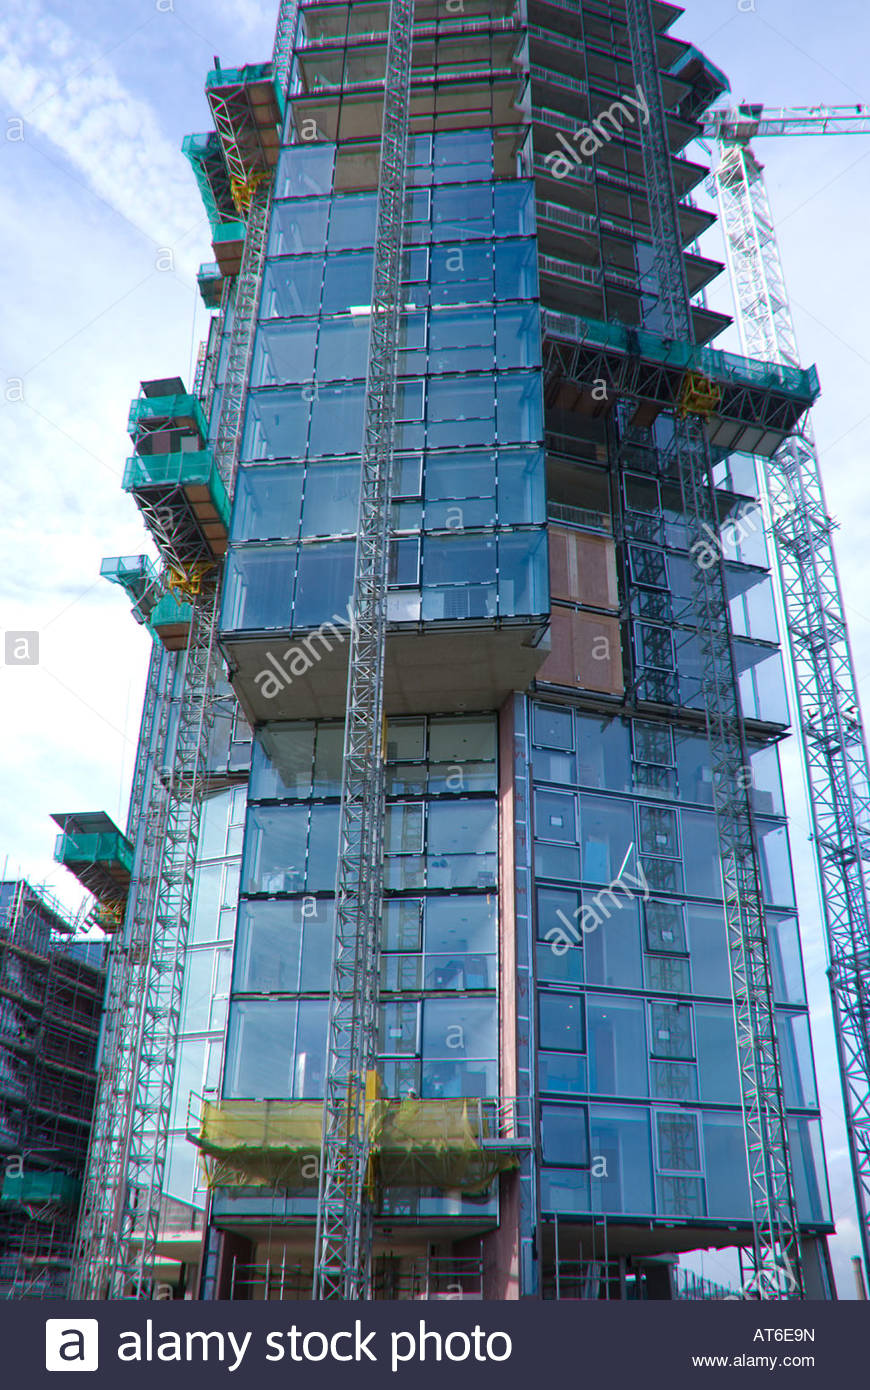 Islington Wharf, Ancoats, East Manchester - under construction 2008 - Stock Image